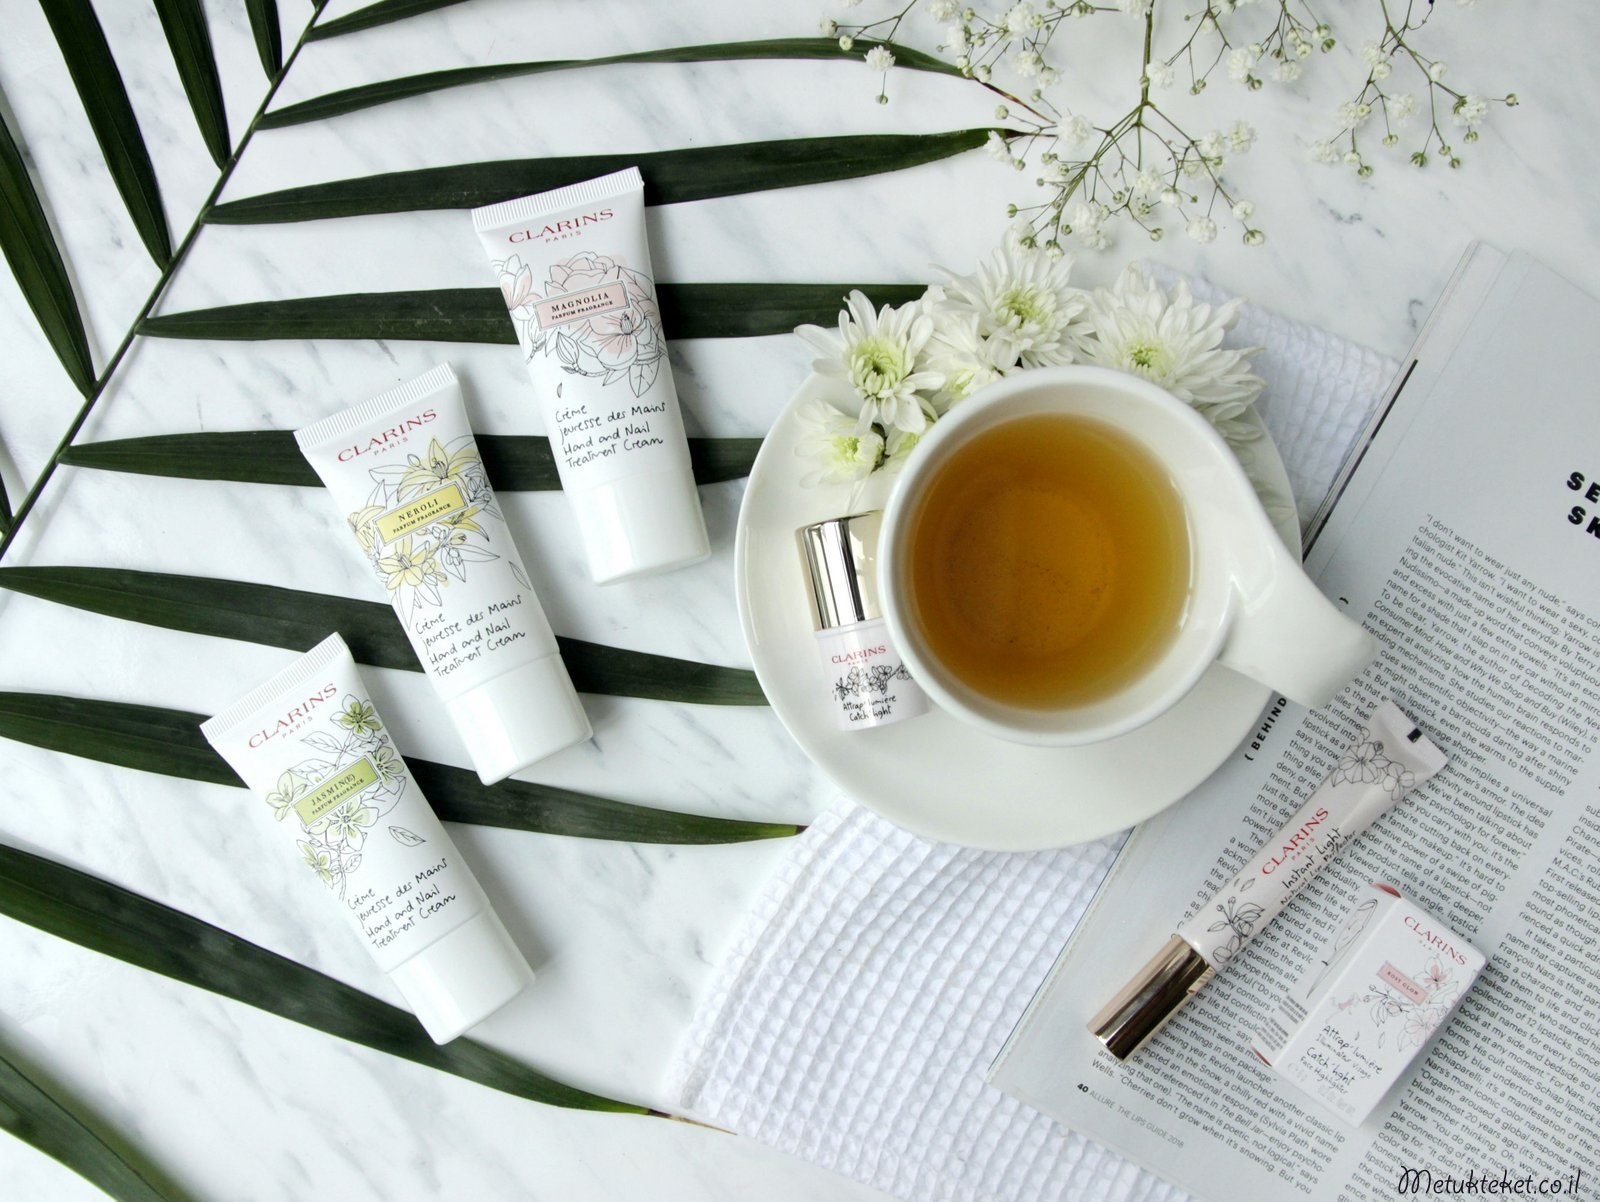 Clarins - White Flowers Collection